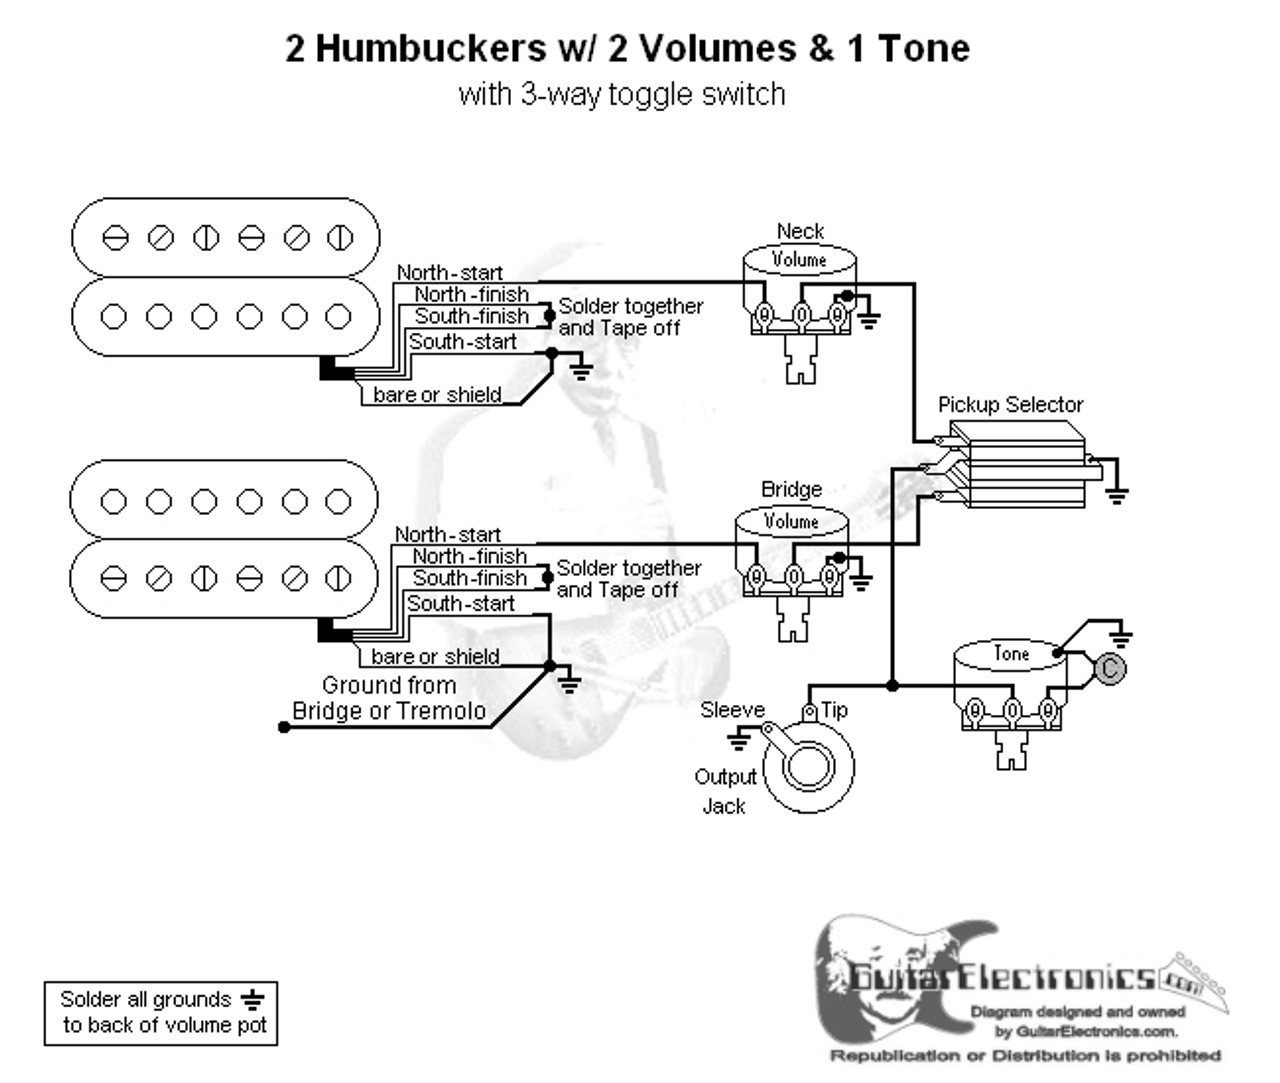 small resolution of wiring diagrams for 2 humbucker 2 volume 1 tone wiring diagram toolbox single pickup guitar wiring diagram 2 humbuckers 3 way toggle switch 2 volumes 1 tone